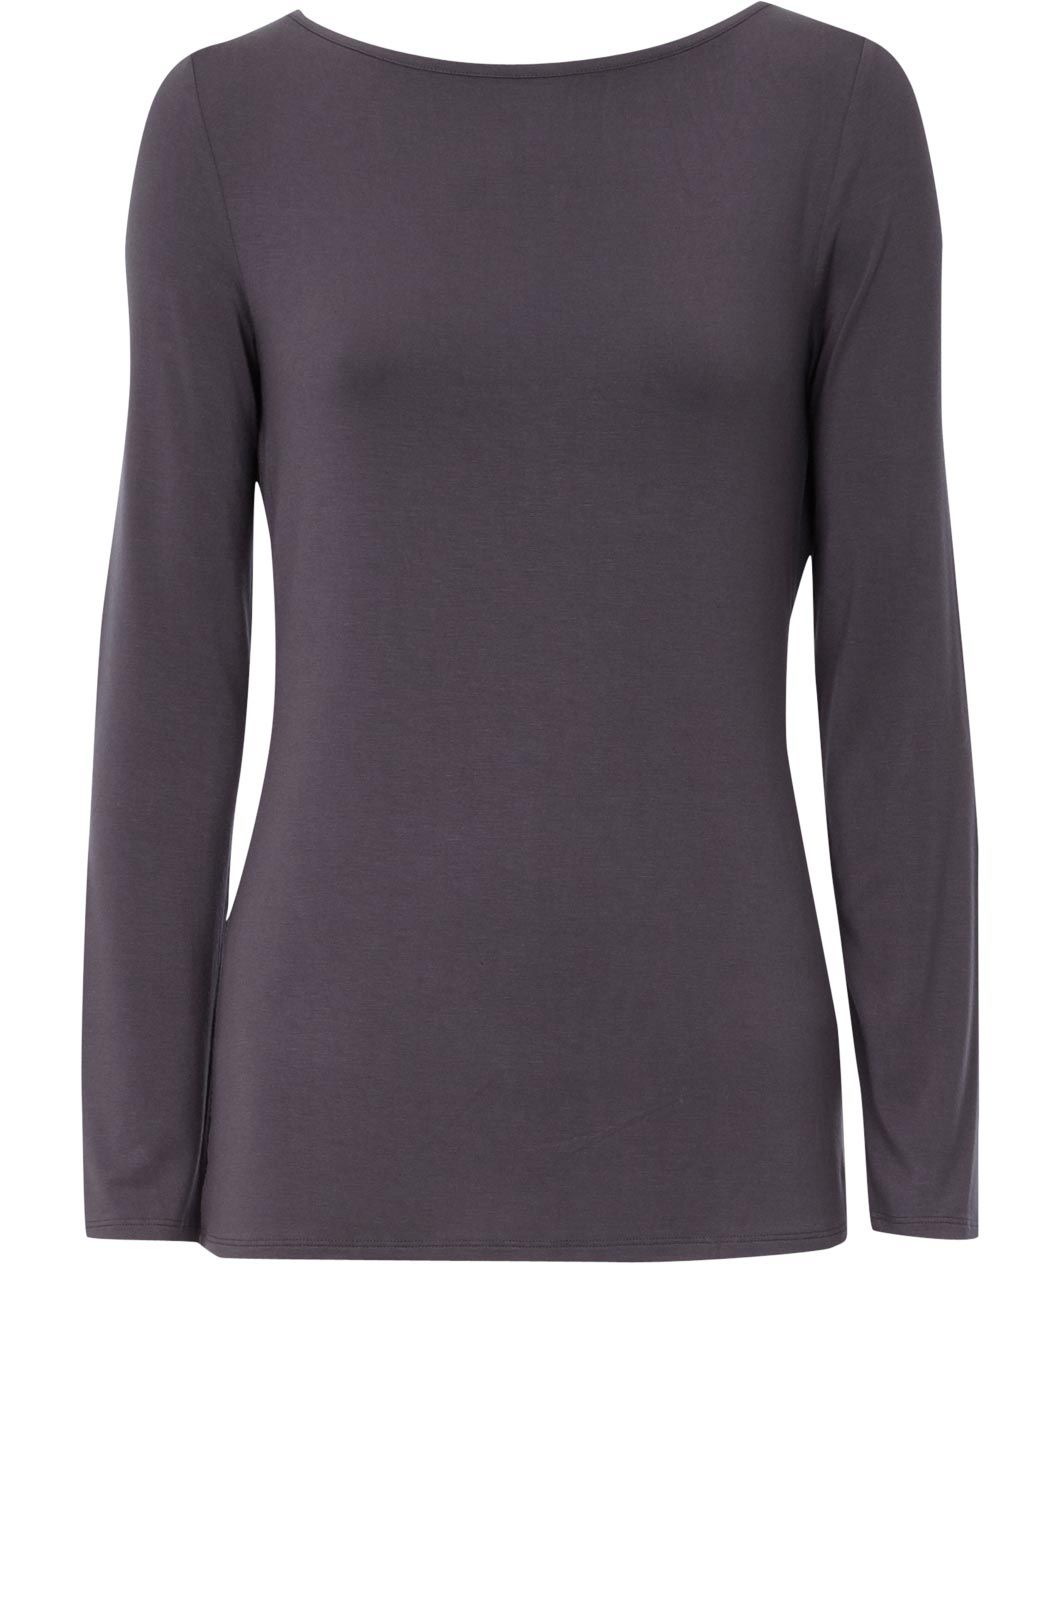 Oasis Boatenck long sleeve tee Grey product image